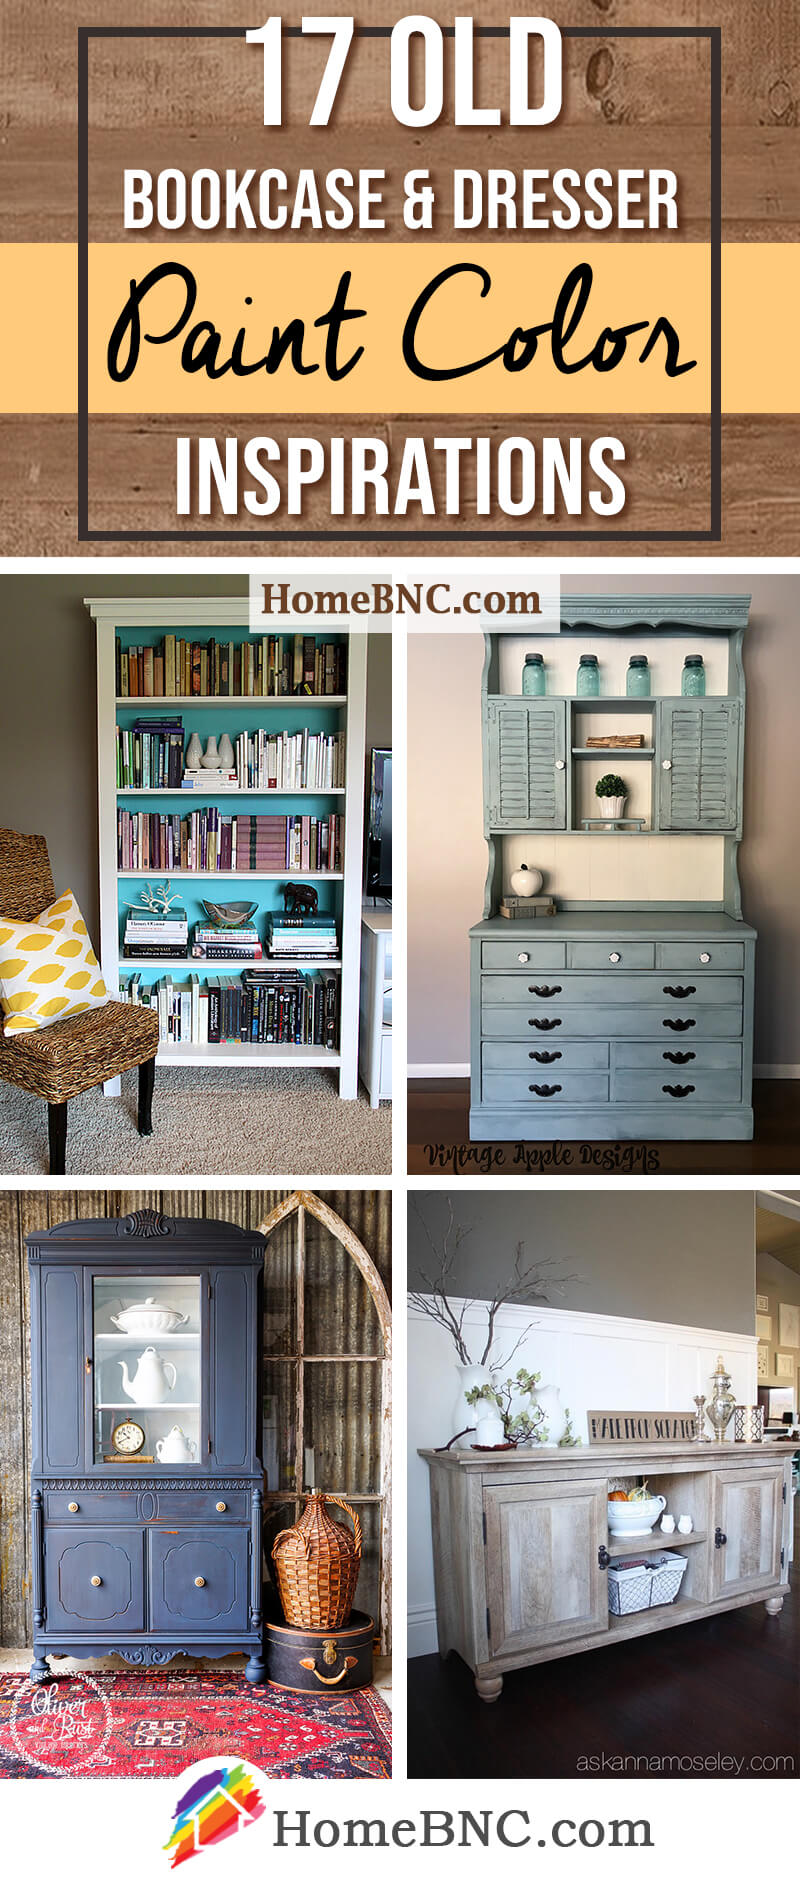 Old Bookcase and Dresser Paint Color Ideas